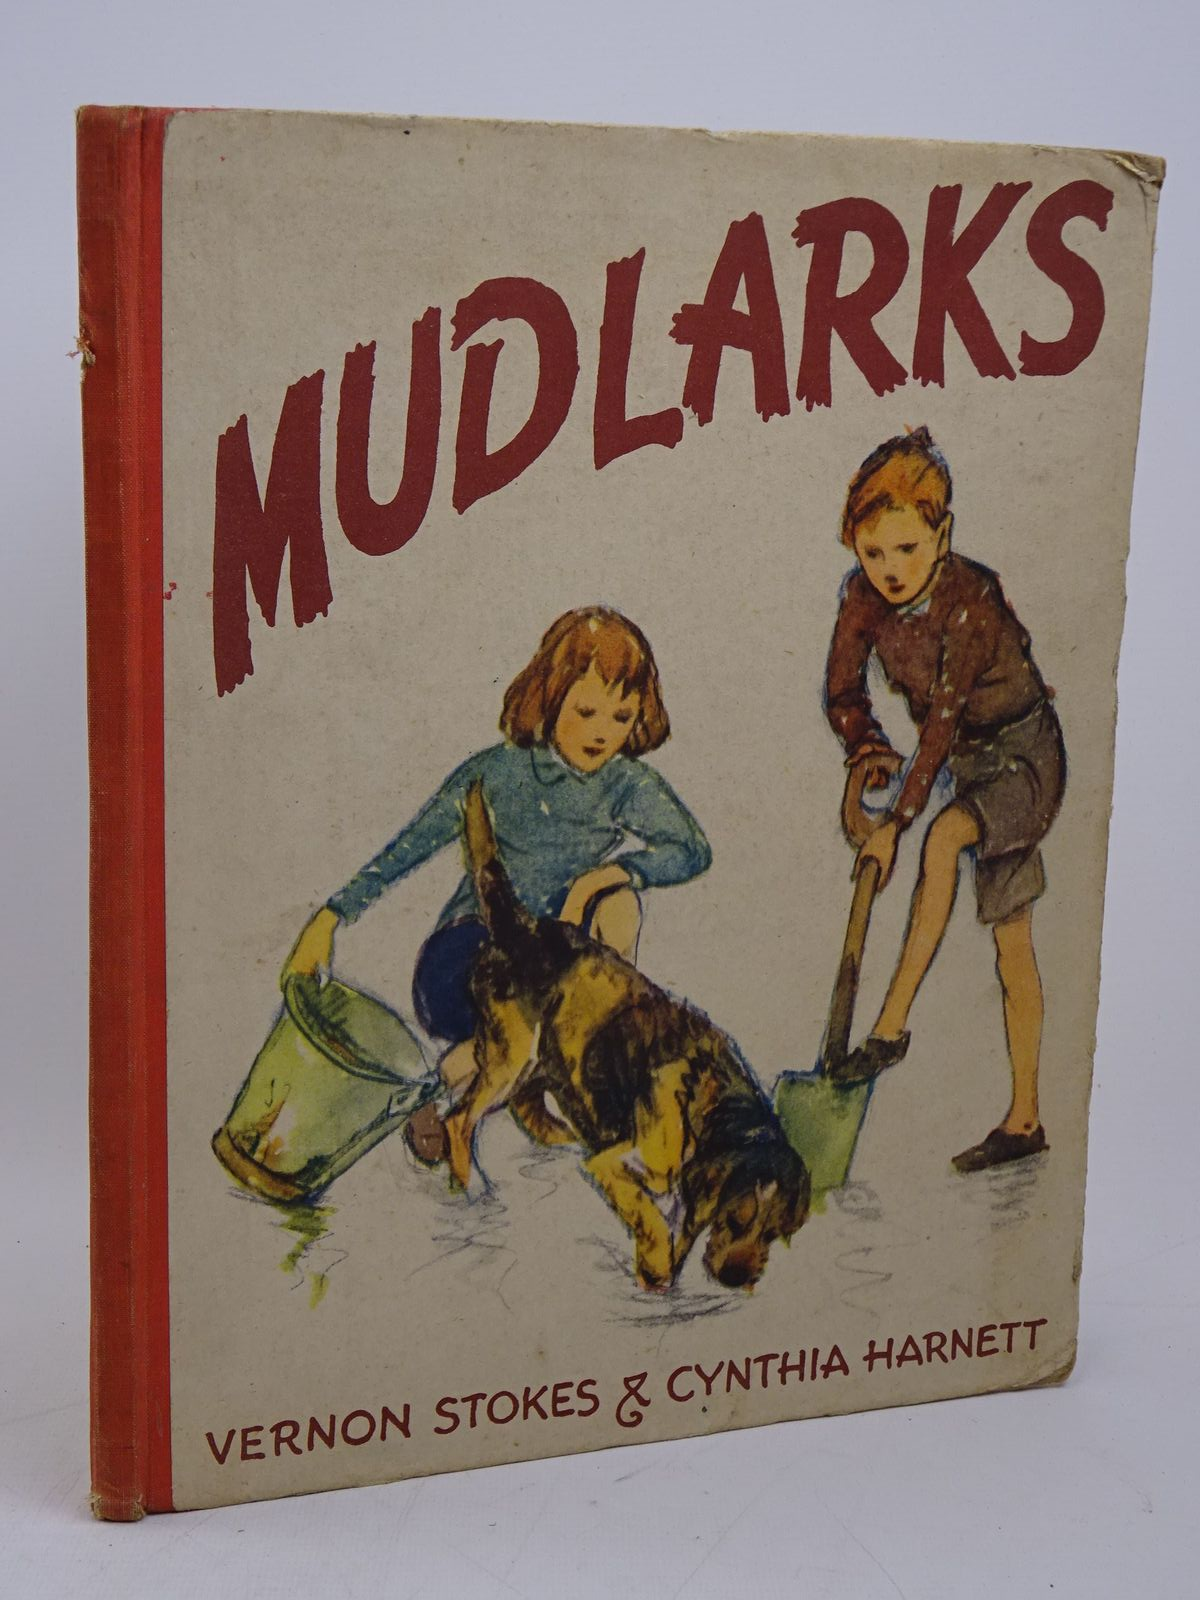 Photo of MUDLARKS written by Stokes, Vernon Harnett, Cynthia illustrated by Stokes, Vernon Harnett, Cynthia published by Collins (STOCK CODE: 1317908)  for sale by Stella & Rose's Books